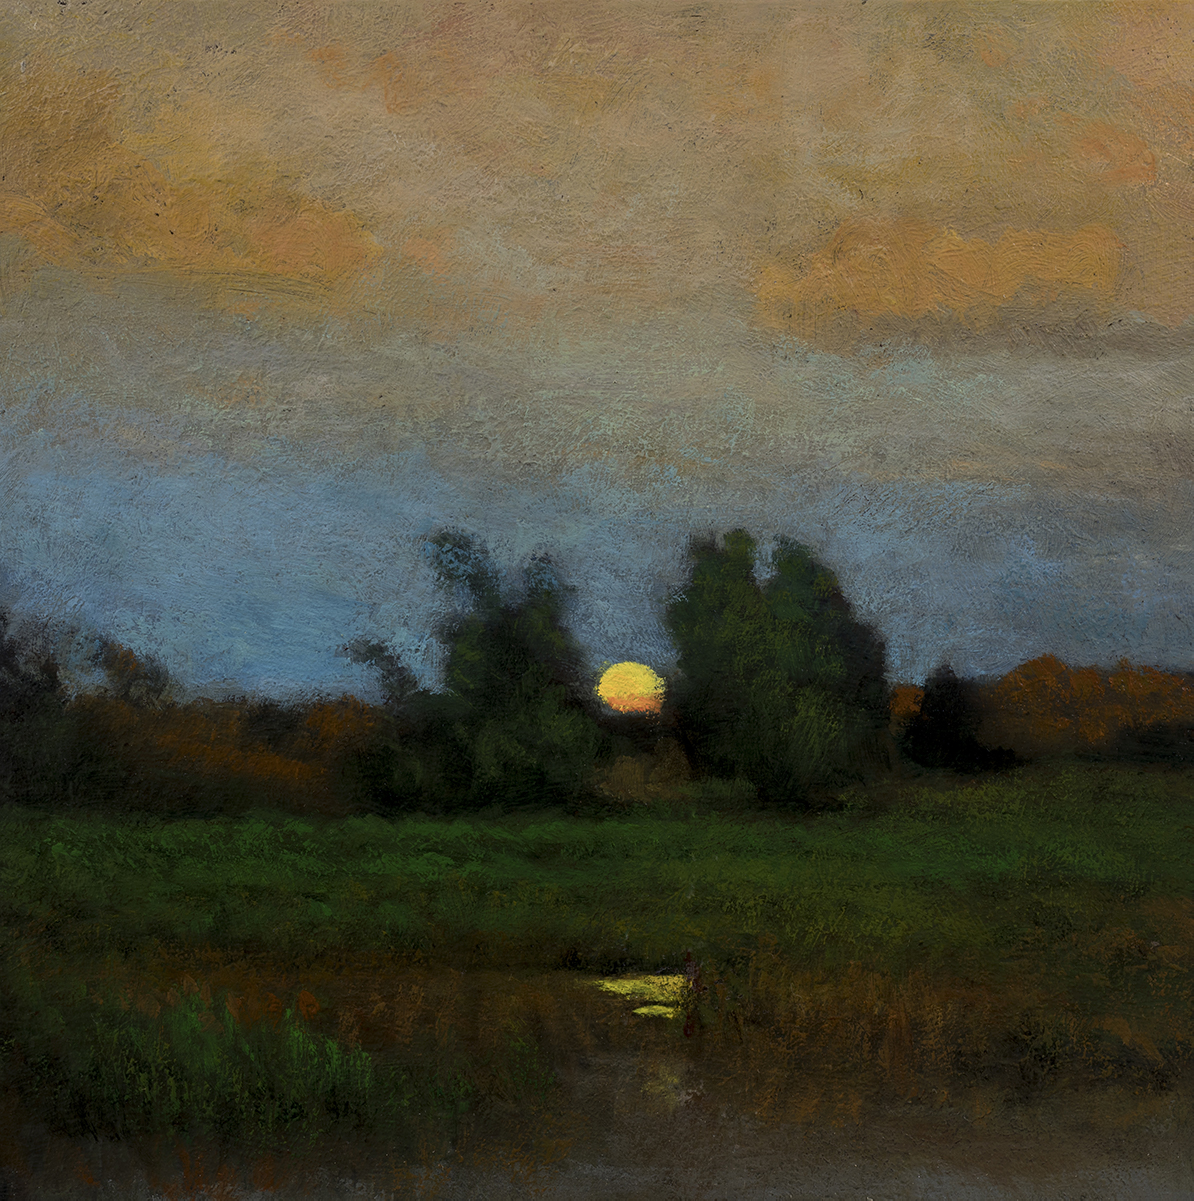 Study after: George Inness - Moonrise by M Francis McCarthy - 8x8 Oil on Wood Panel